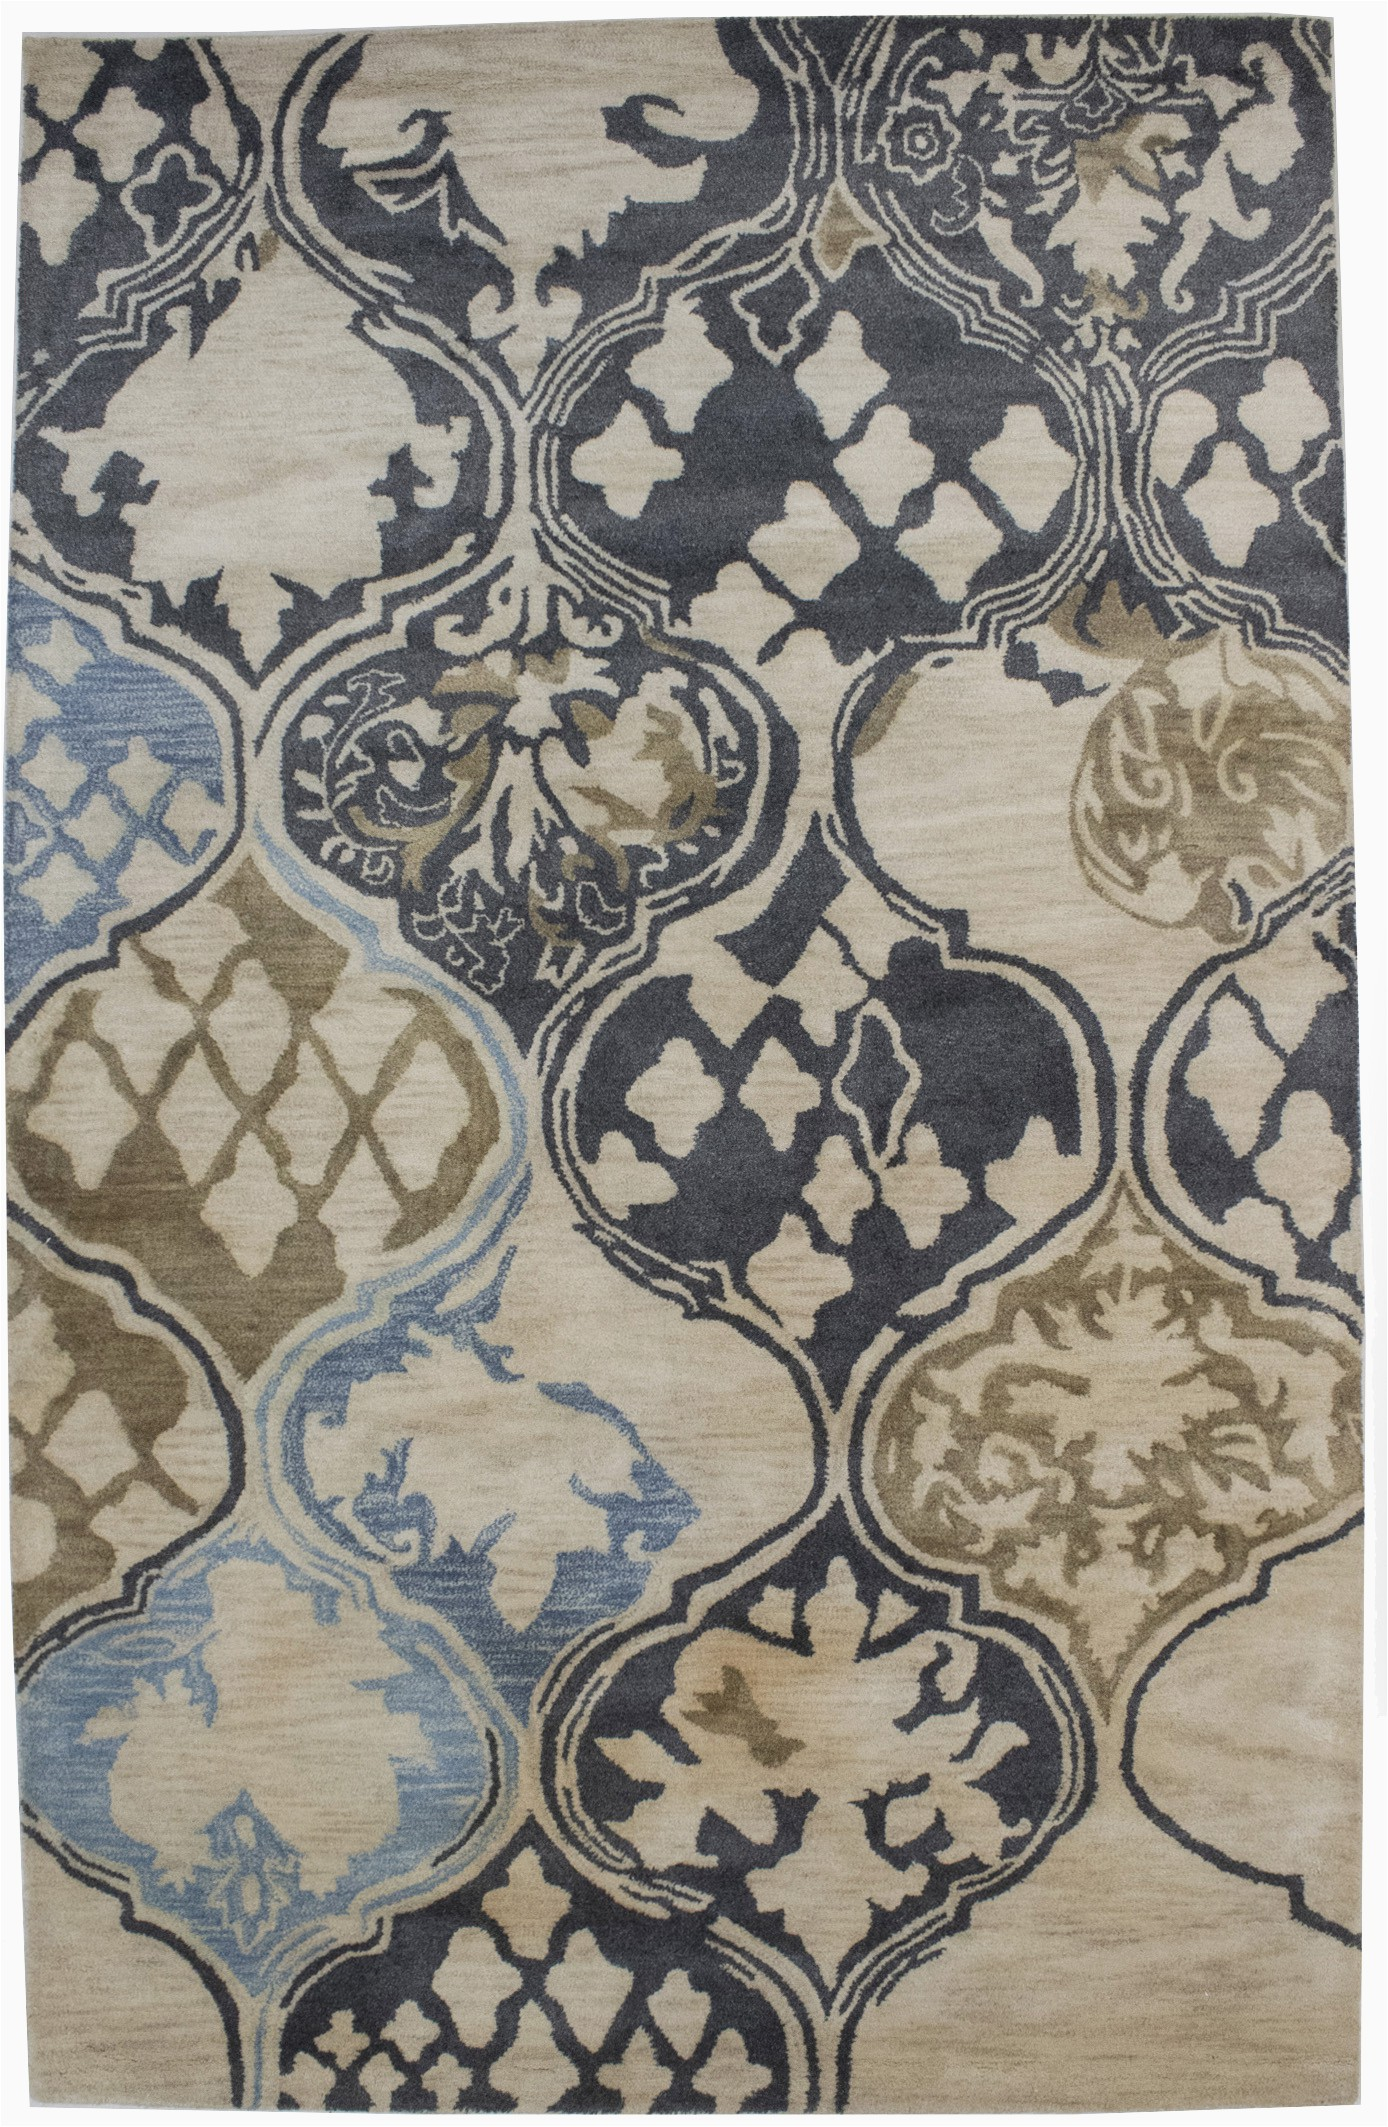 Cream and Navy Blue area Rugs Details About Cream & Navy Blue Abstract 5×8 Modern Wool Hand Tufted oriental area Rug Carpet